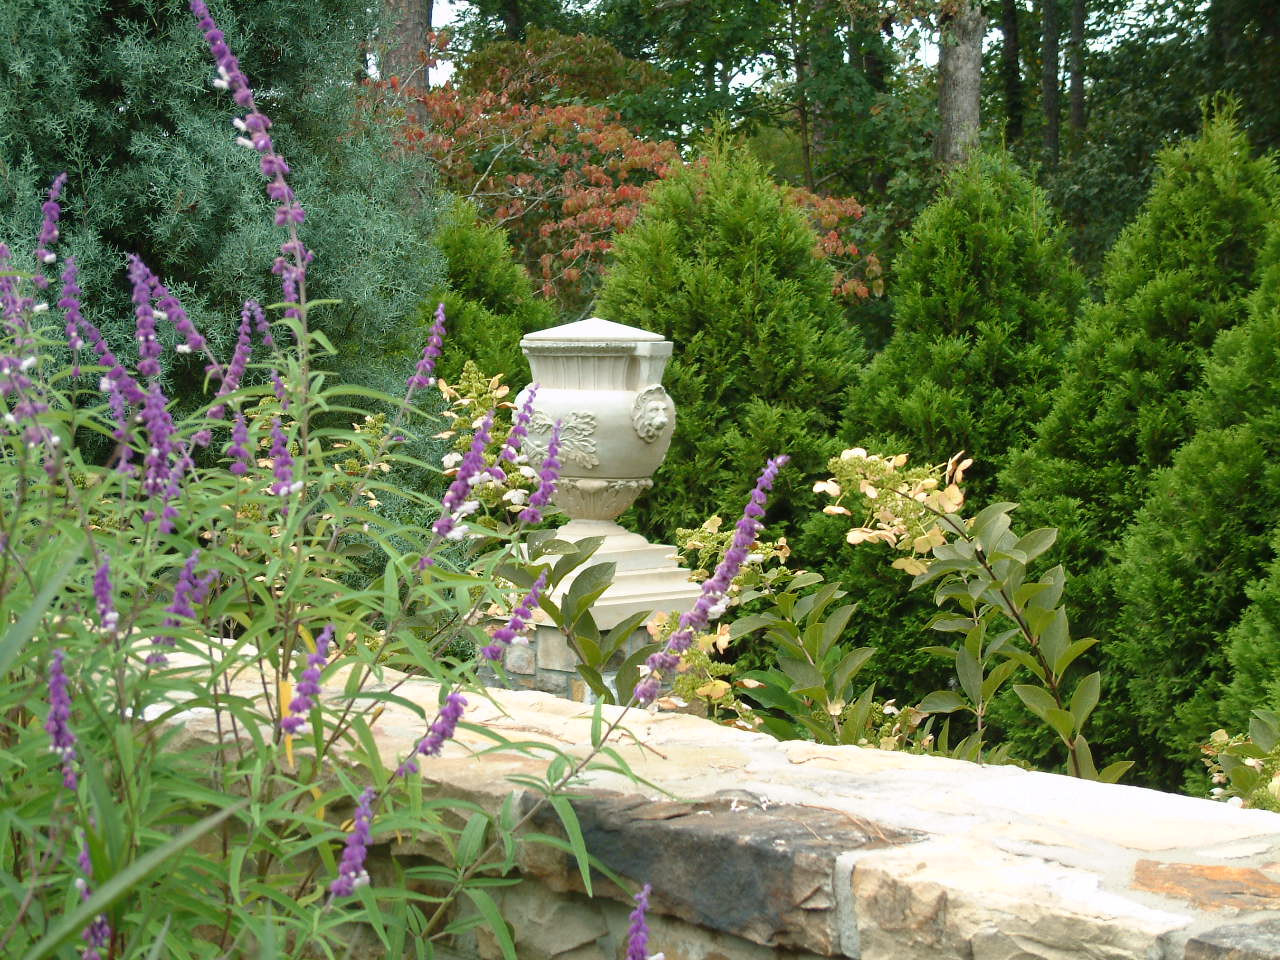 Through the salvia and hydrangeas, guests are welcomed to the gardens.